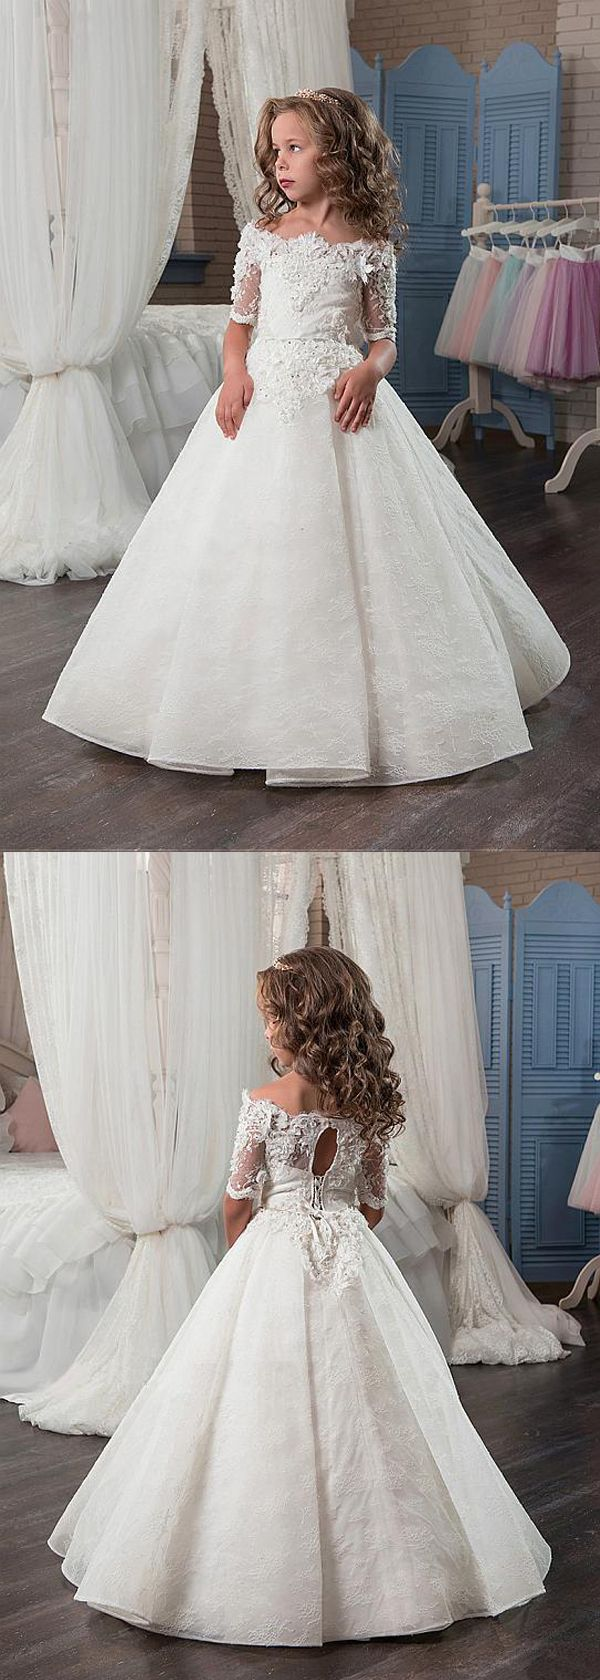 Attractive Lace & Satin Off-the-shoulder Neckline A-Line Flower Girl Dresses With Beaded 3D Flowers